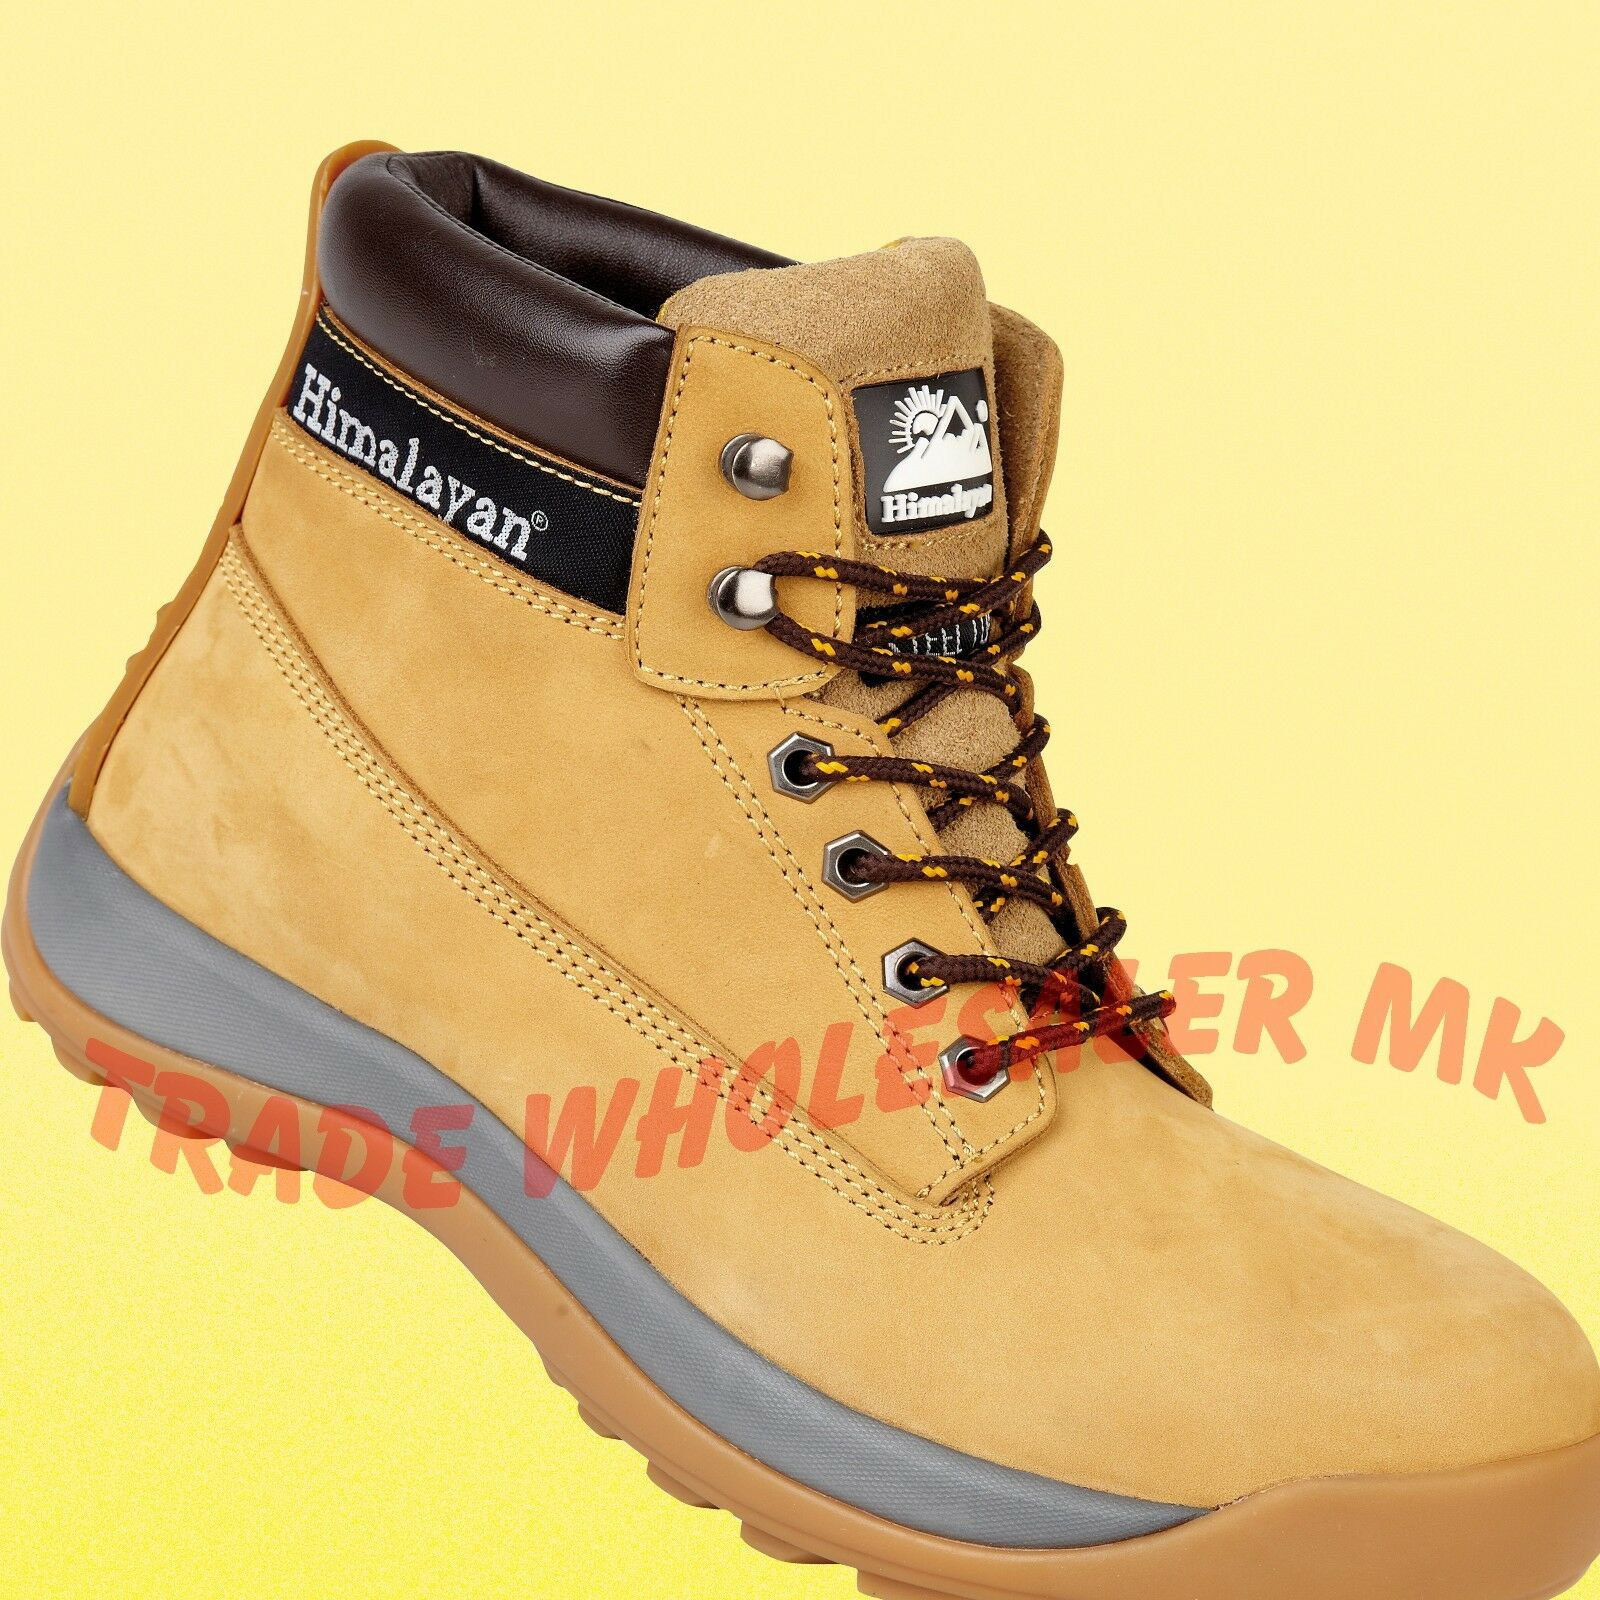 1a514646f38 Details about Himalayan Steel Toe Safety Work Boots Iconic Design 5150  Wheat Honey Boots